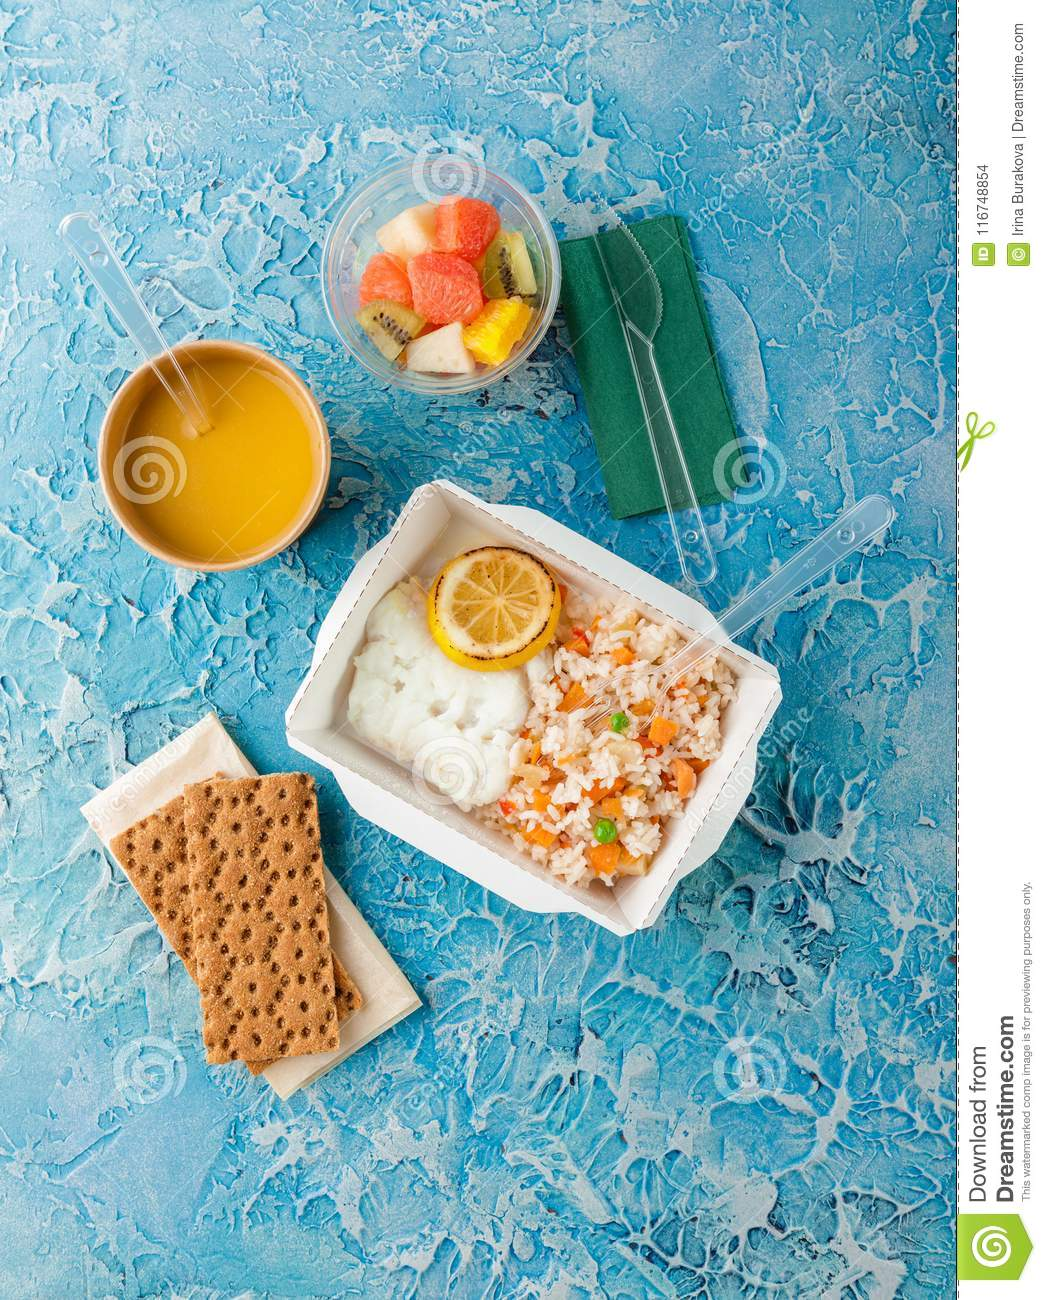 Healthy food delivery  stock photo  Image of food, delicious